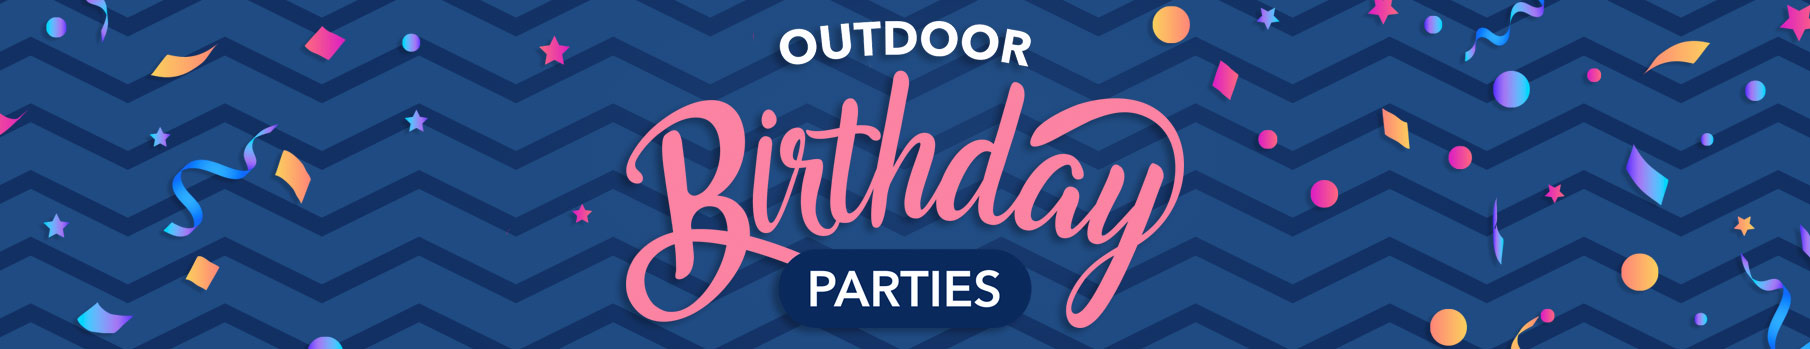 outdoorparty-subhdr-2